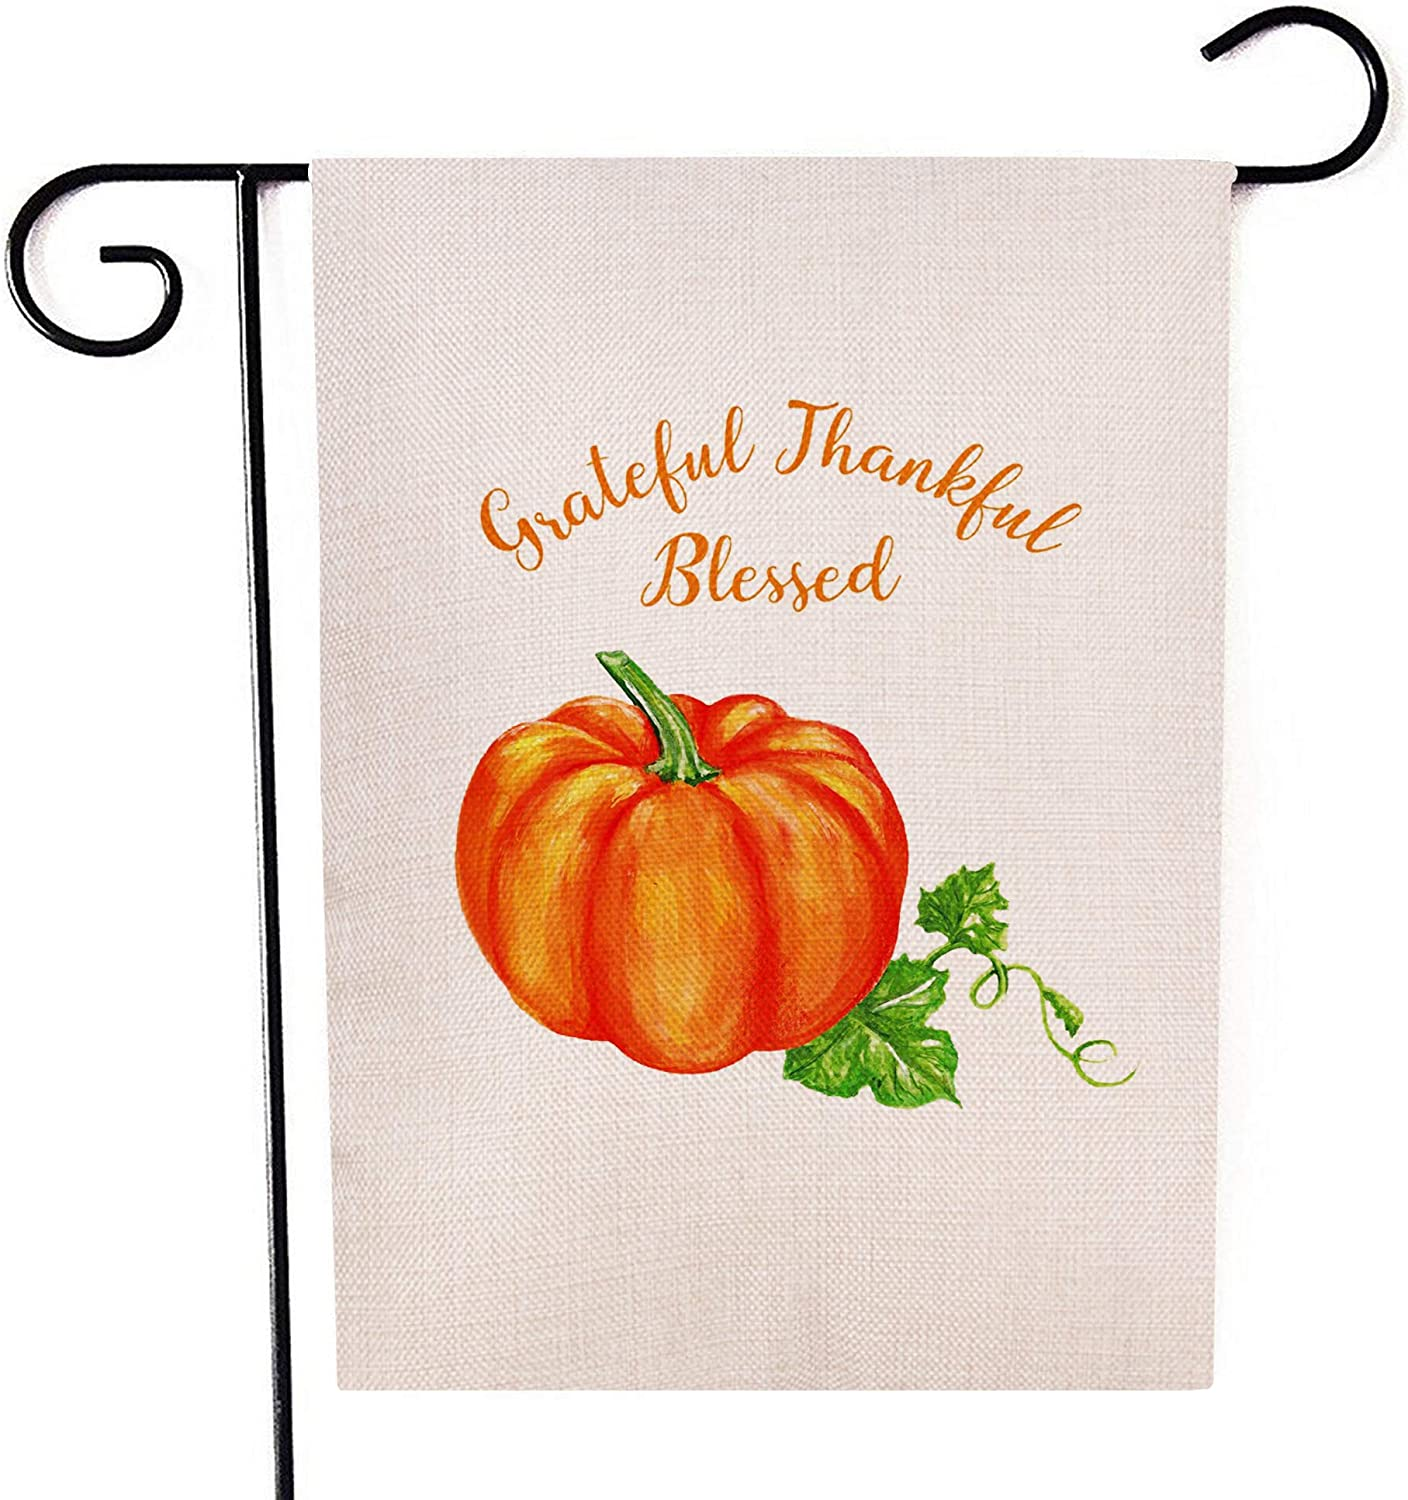 """Grateful Thankful Blessed Pumpkin Garden Flag Double-Sided Farmhouse Autumn Yard Burlap Banner,Flag for Fall,Thanksgiving Indoor Outdoor Decoration 12.6"""" x 18.5"""""""